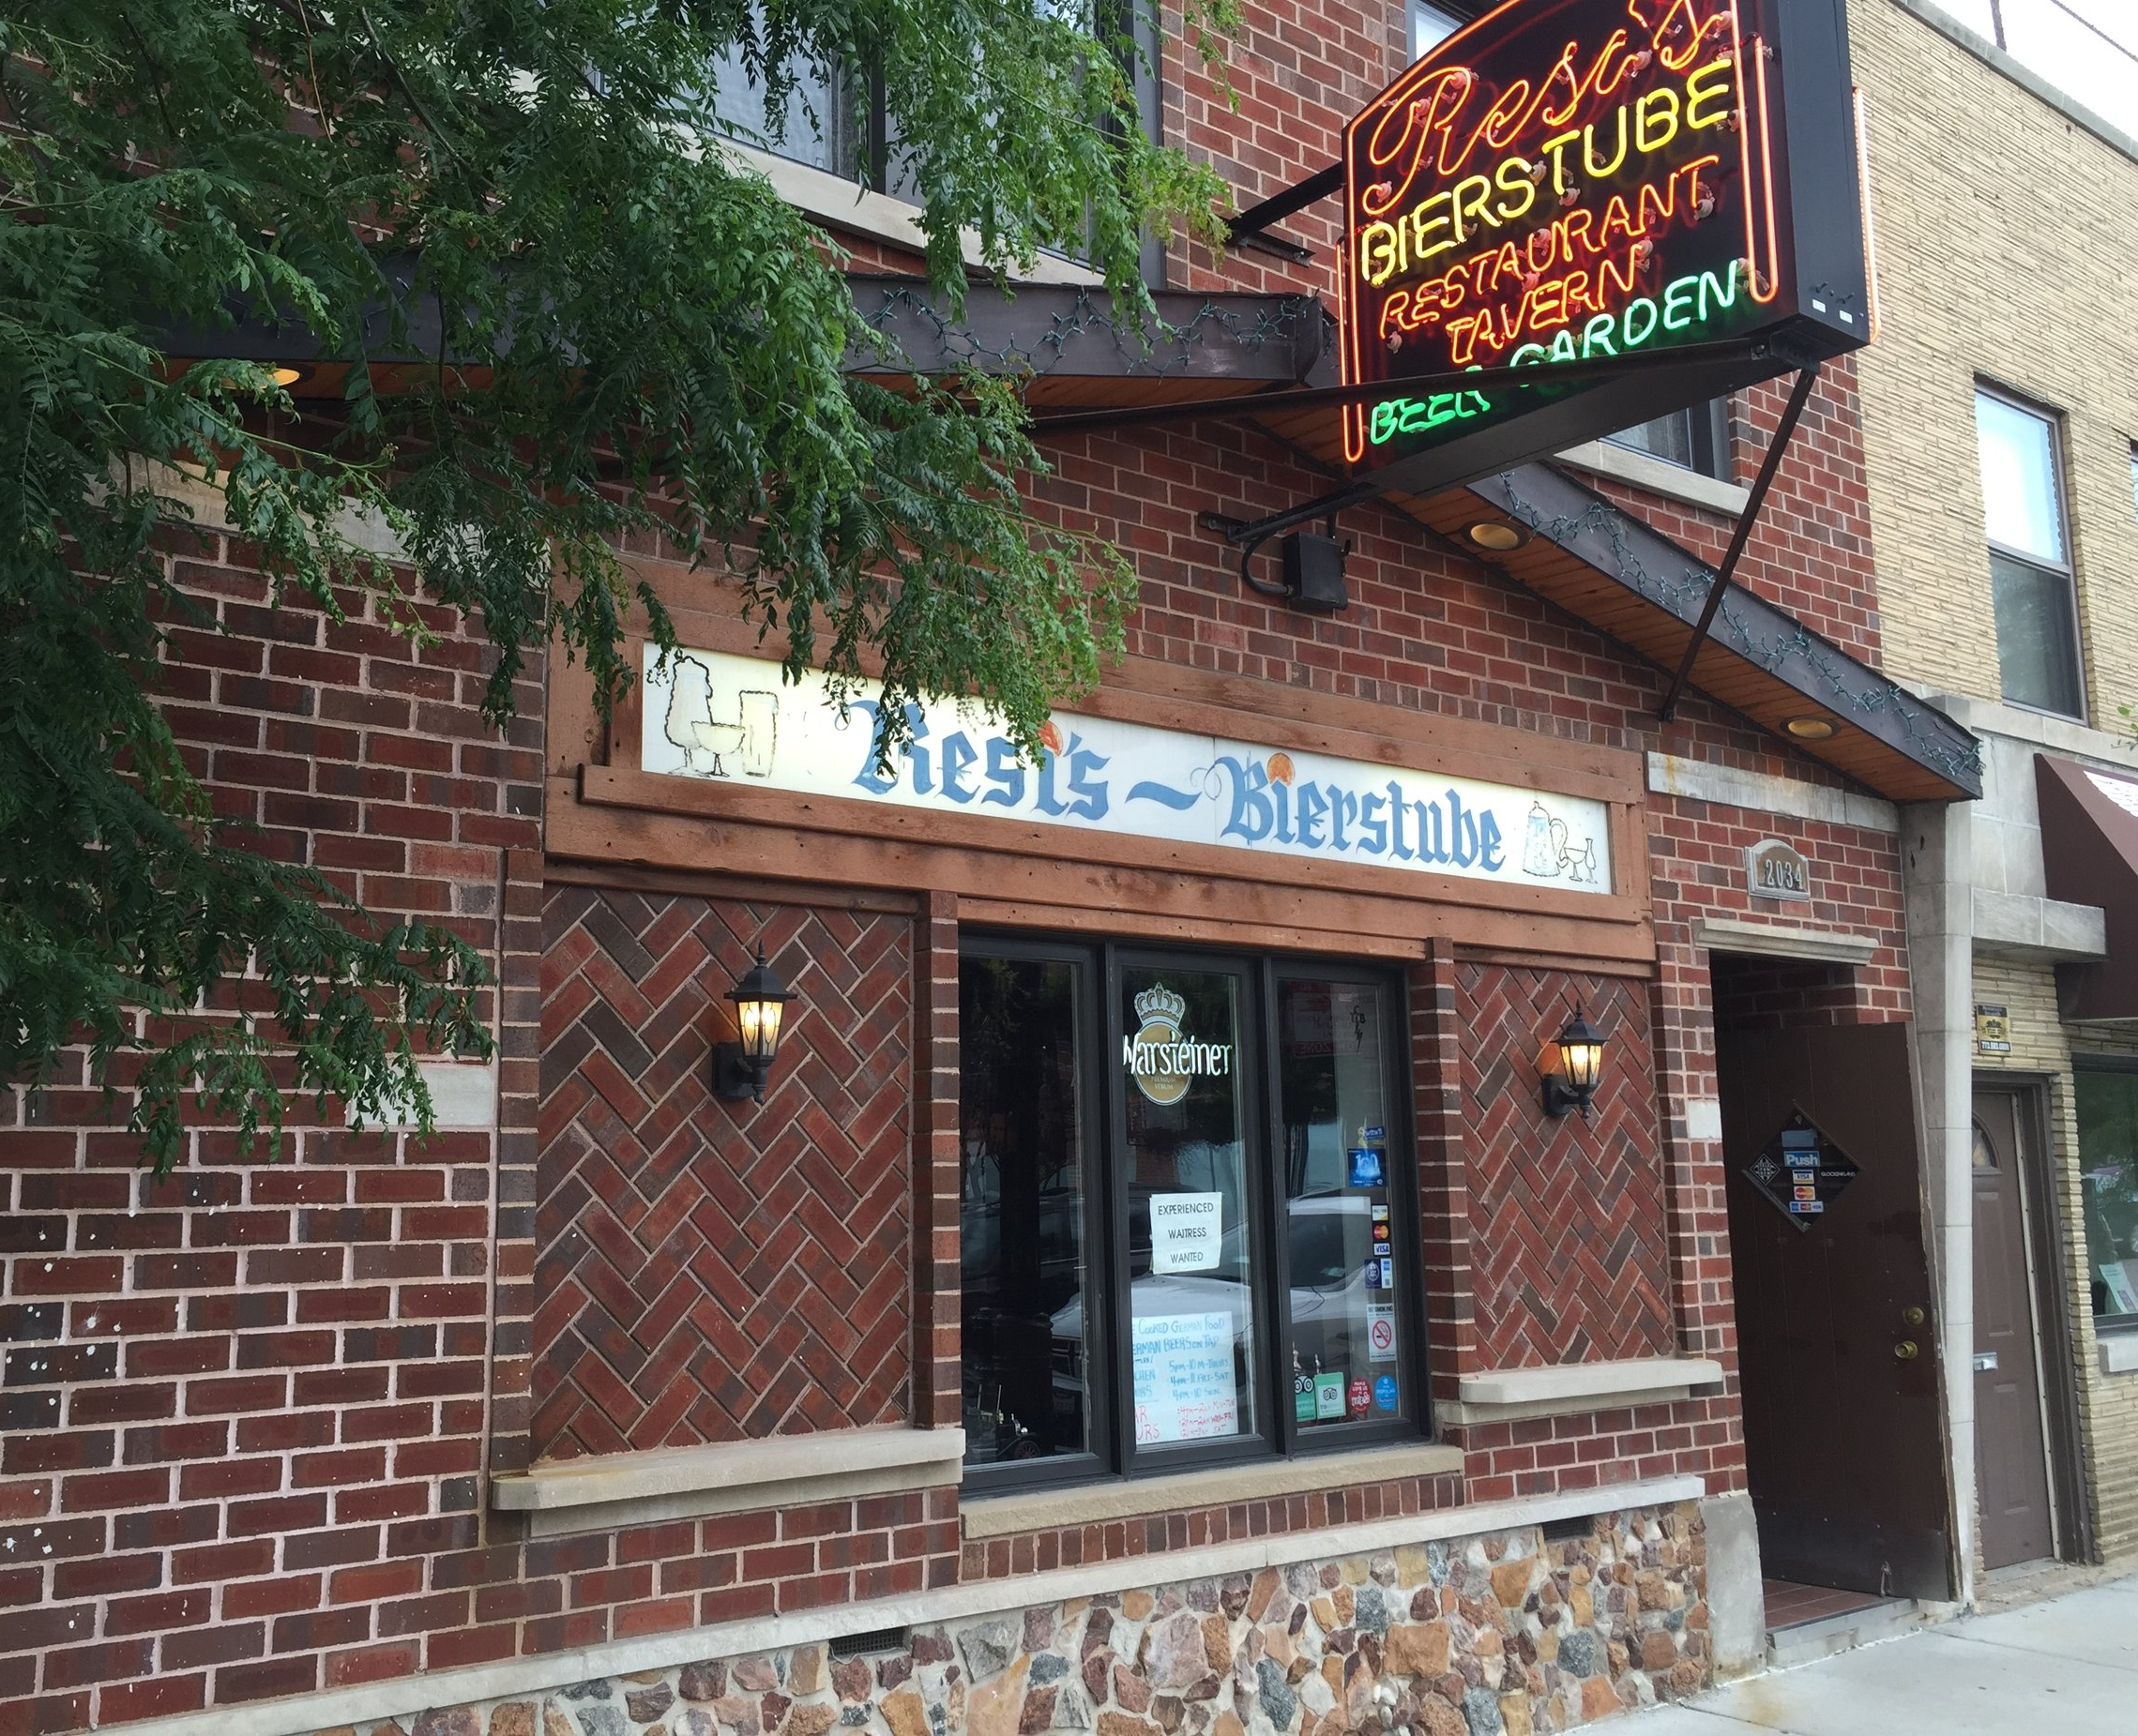 Resi's Bierstube2034 W. Irving Park Rd. – Northcenter Tried and true beer list, with some particular standouts. Plus a local's secret biergarten.